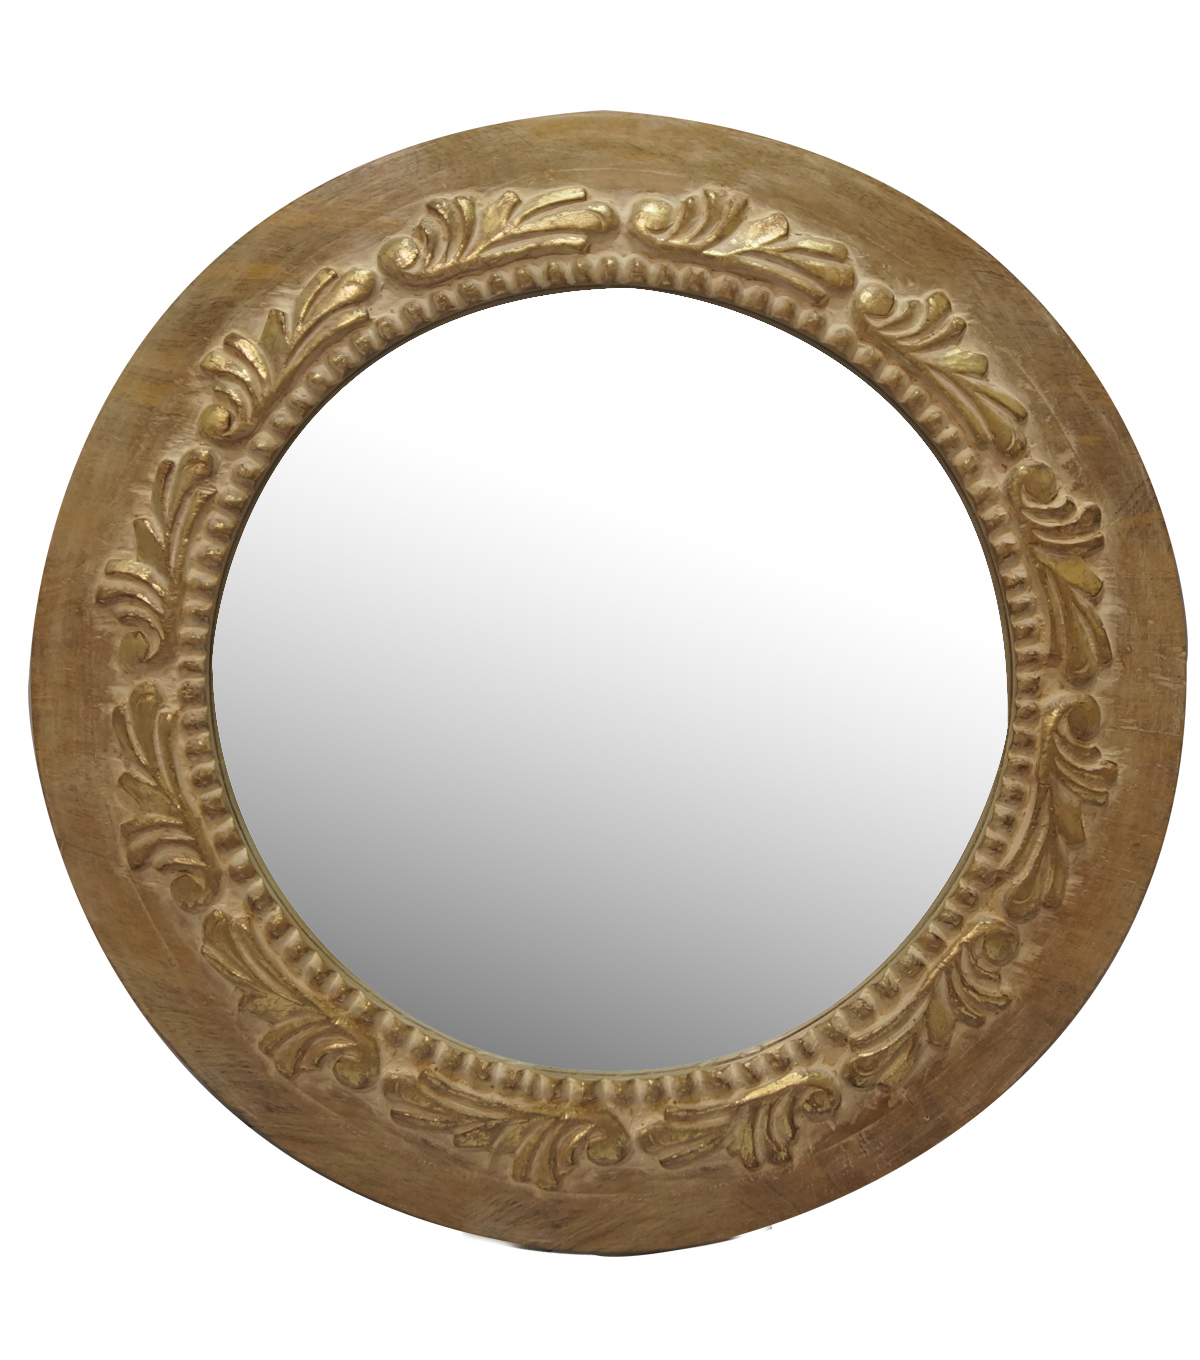 Idea Market Hand-Done Round Wooden Carved Mirror